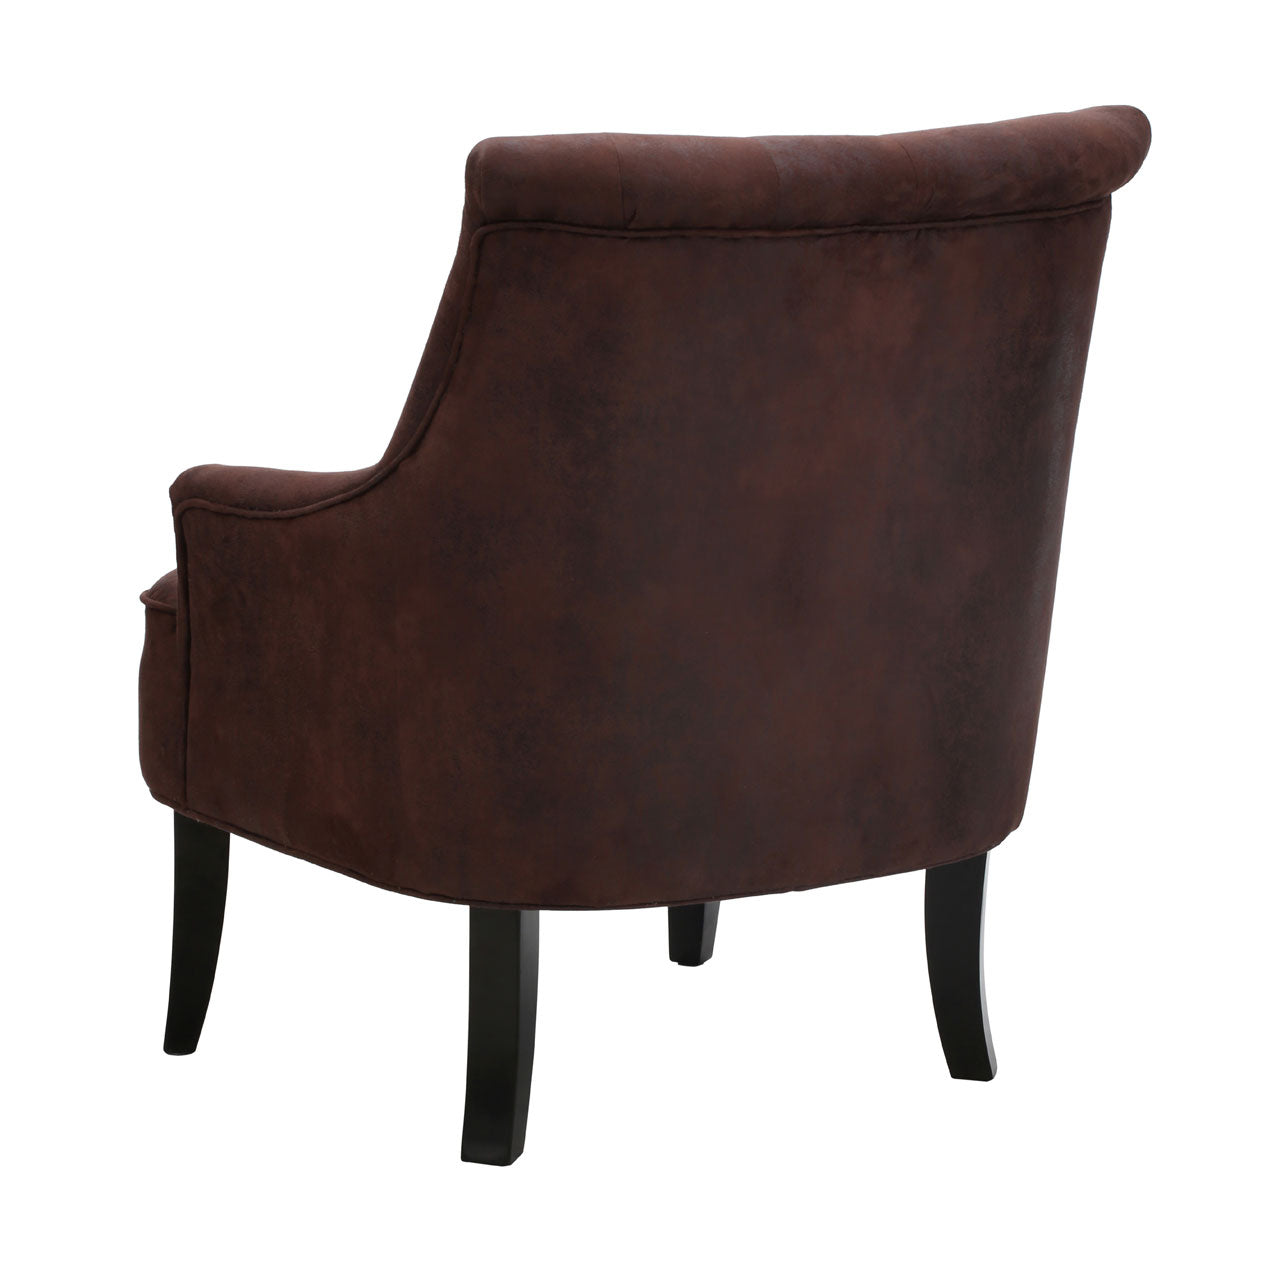 Hertford Chair in Brown